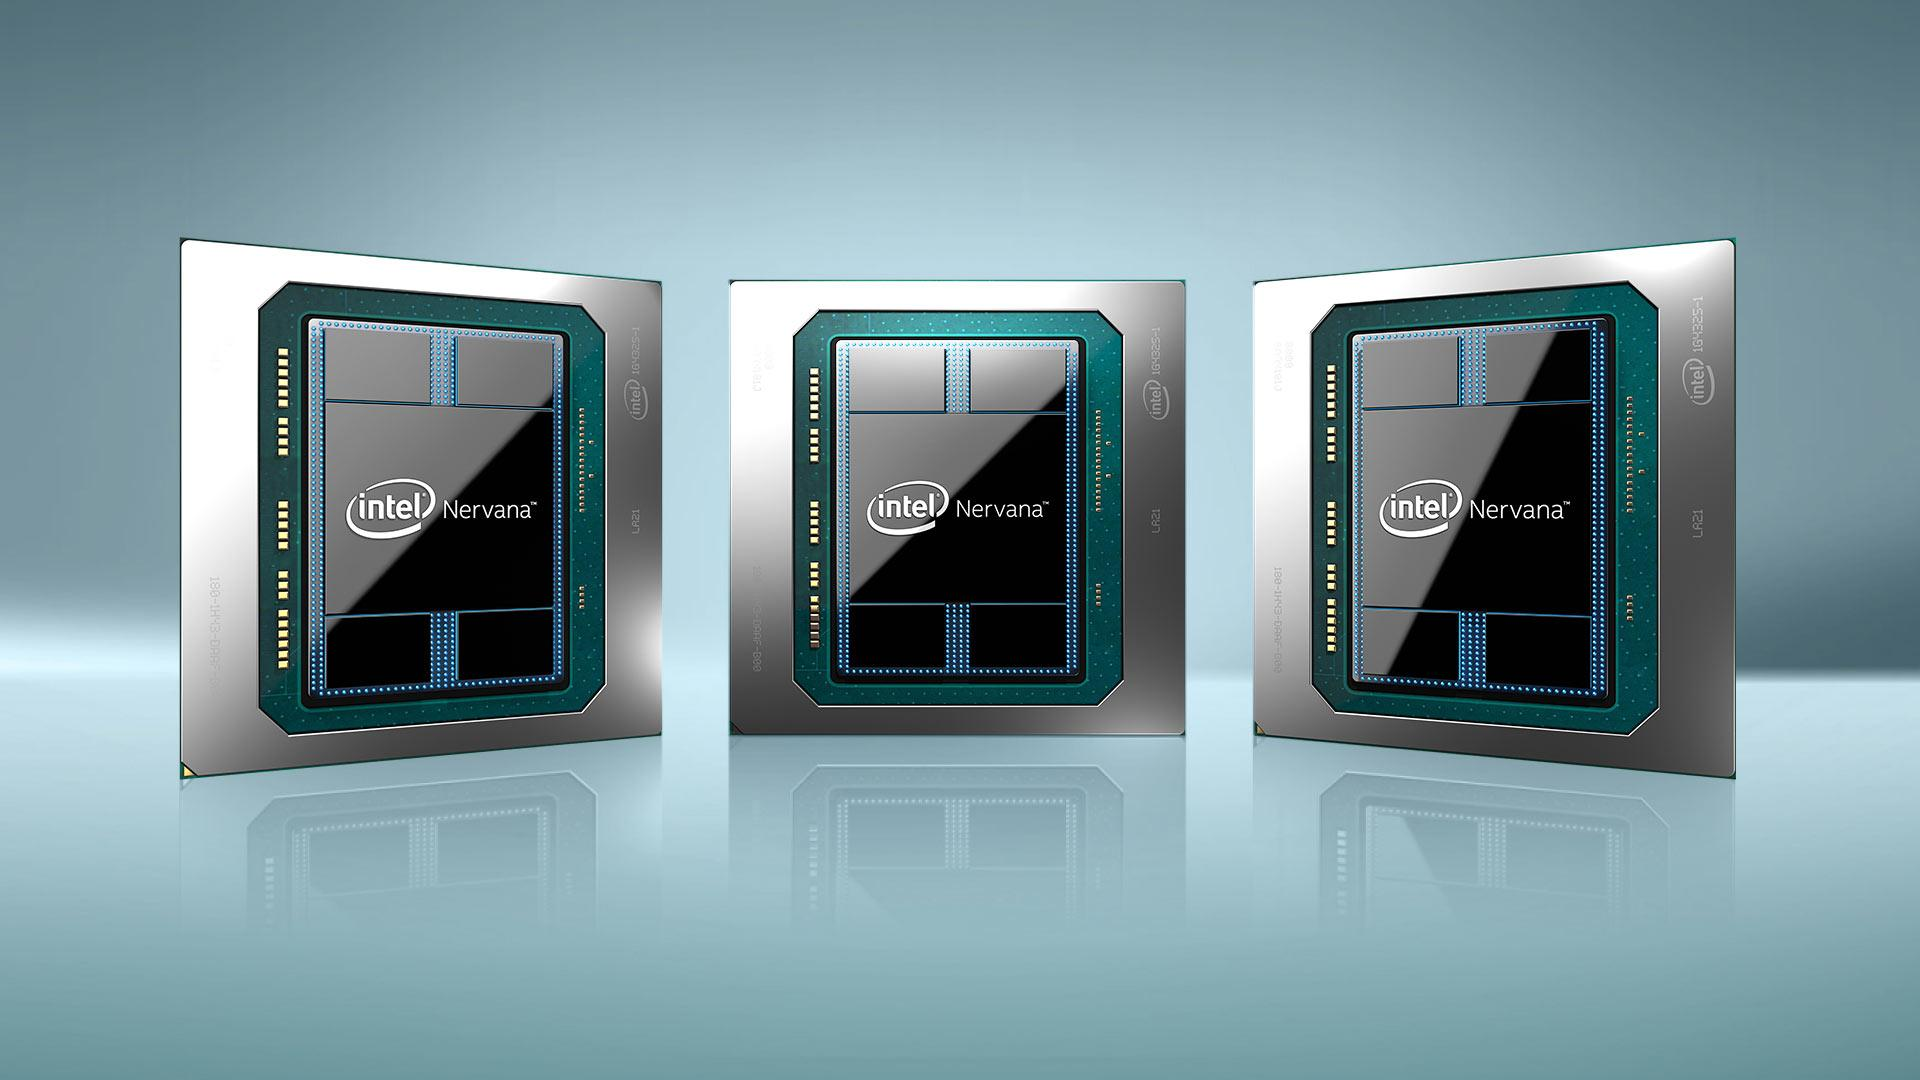 Intel Nervana is a neural network processor to accelerate AI